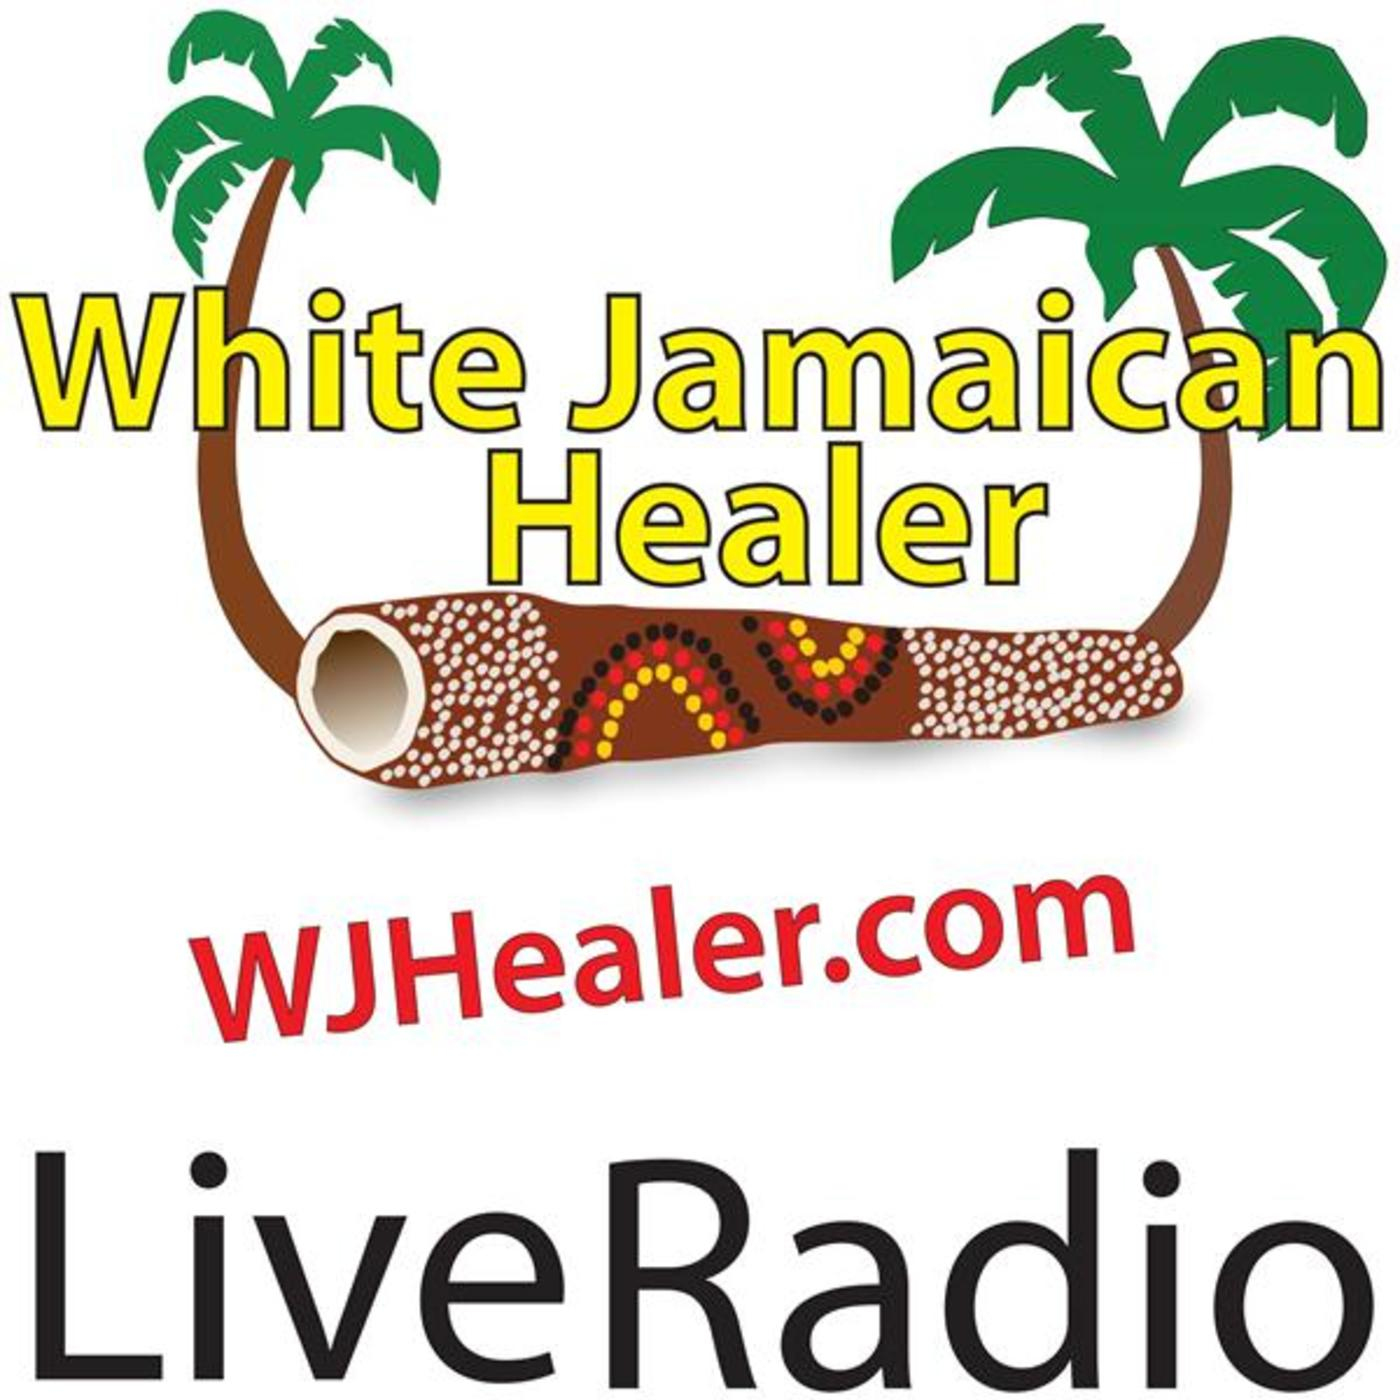 White Jamaican Healer, Master of Duality